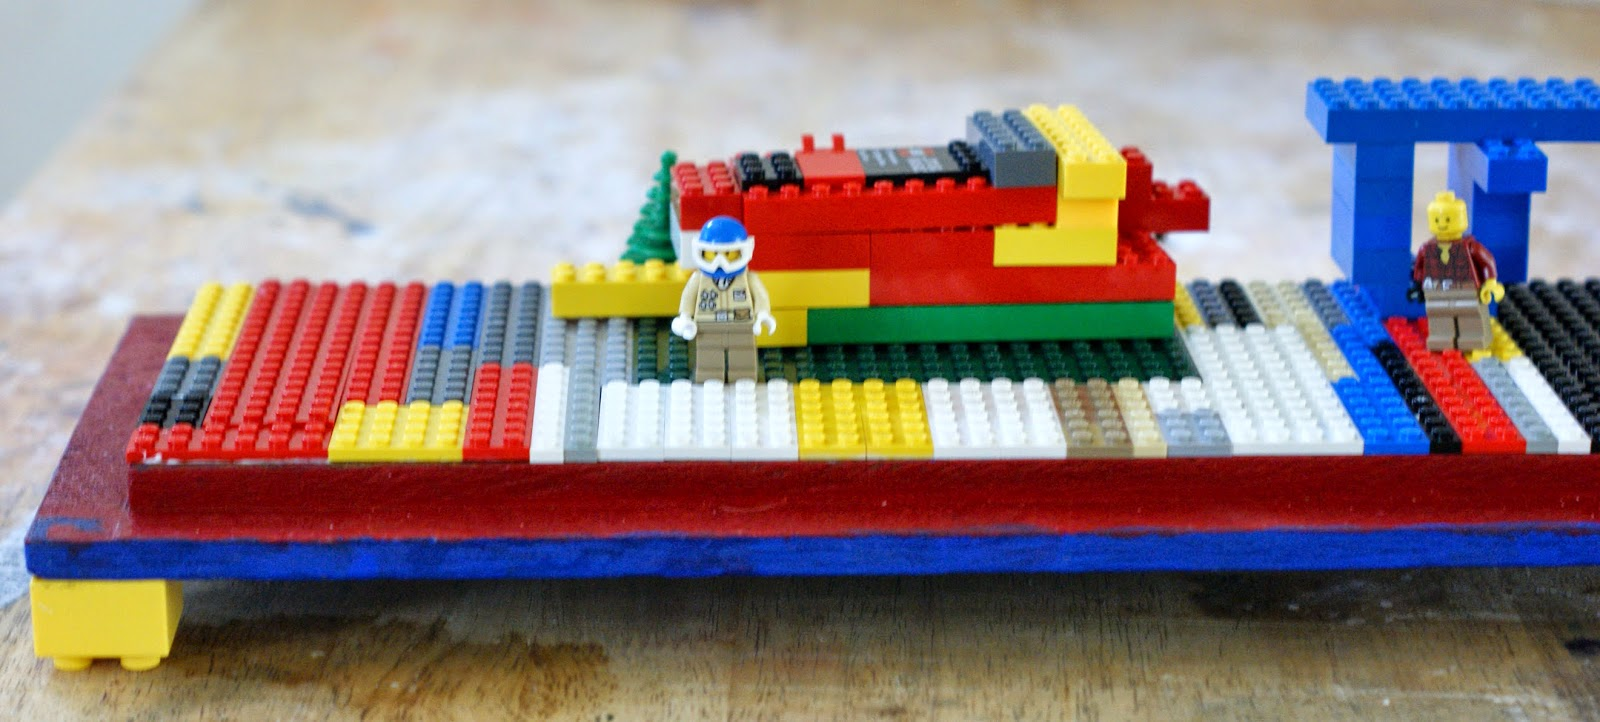 Easy DIY Lego Container with Play Table!